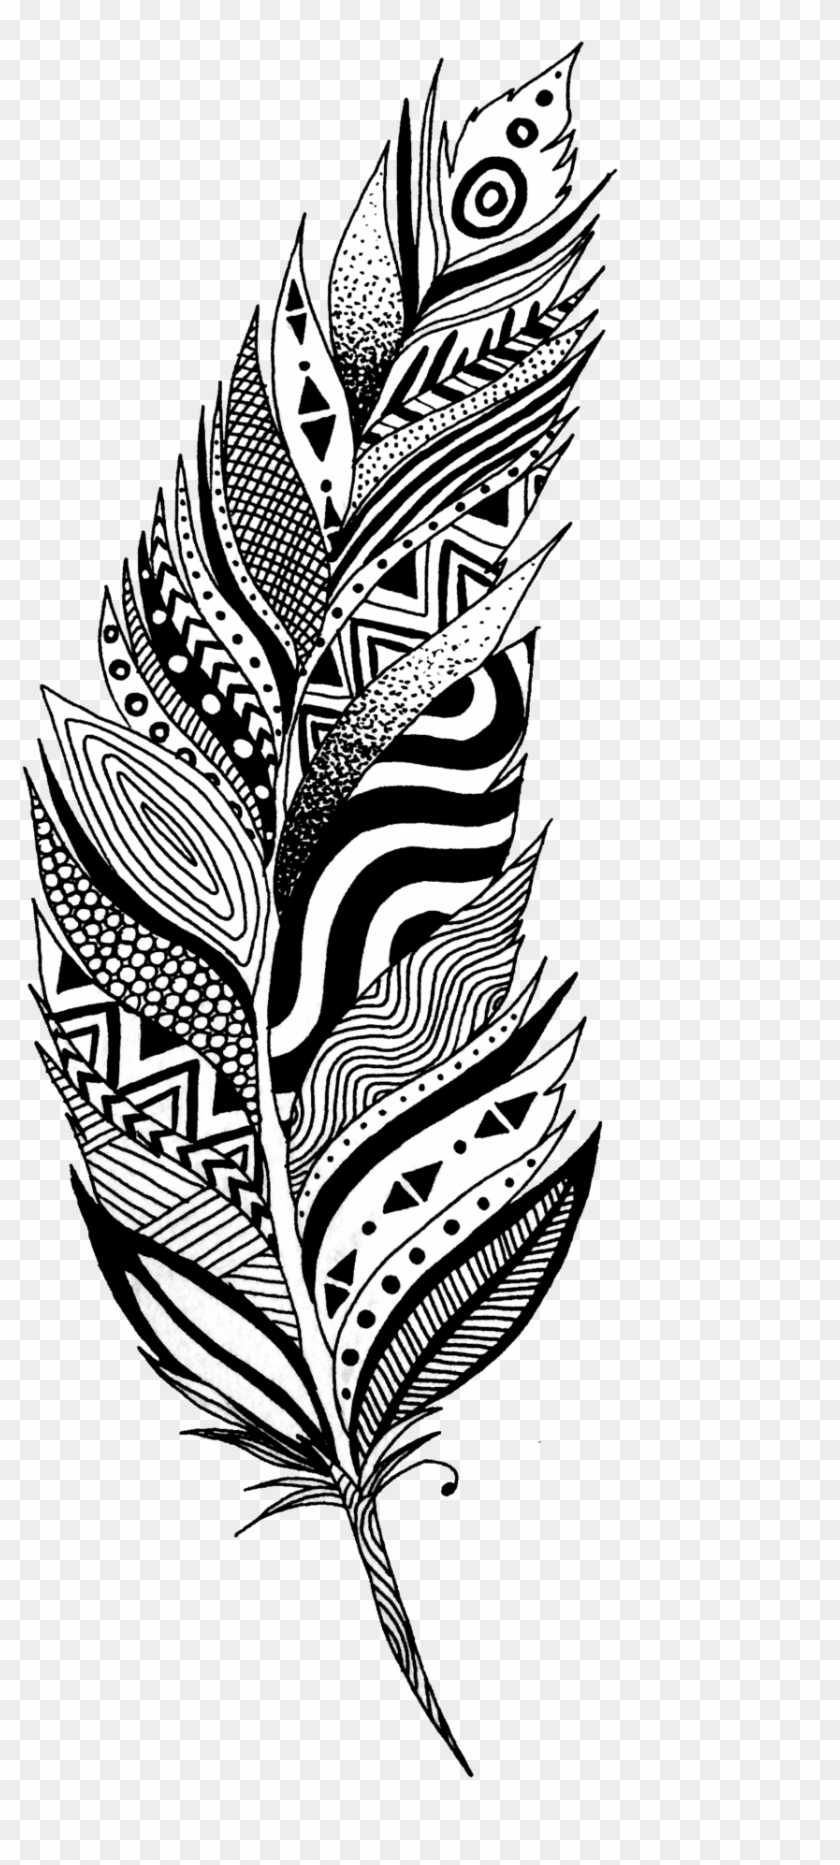 Black And White Feather Tattoo Design.